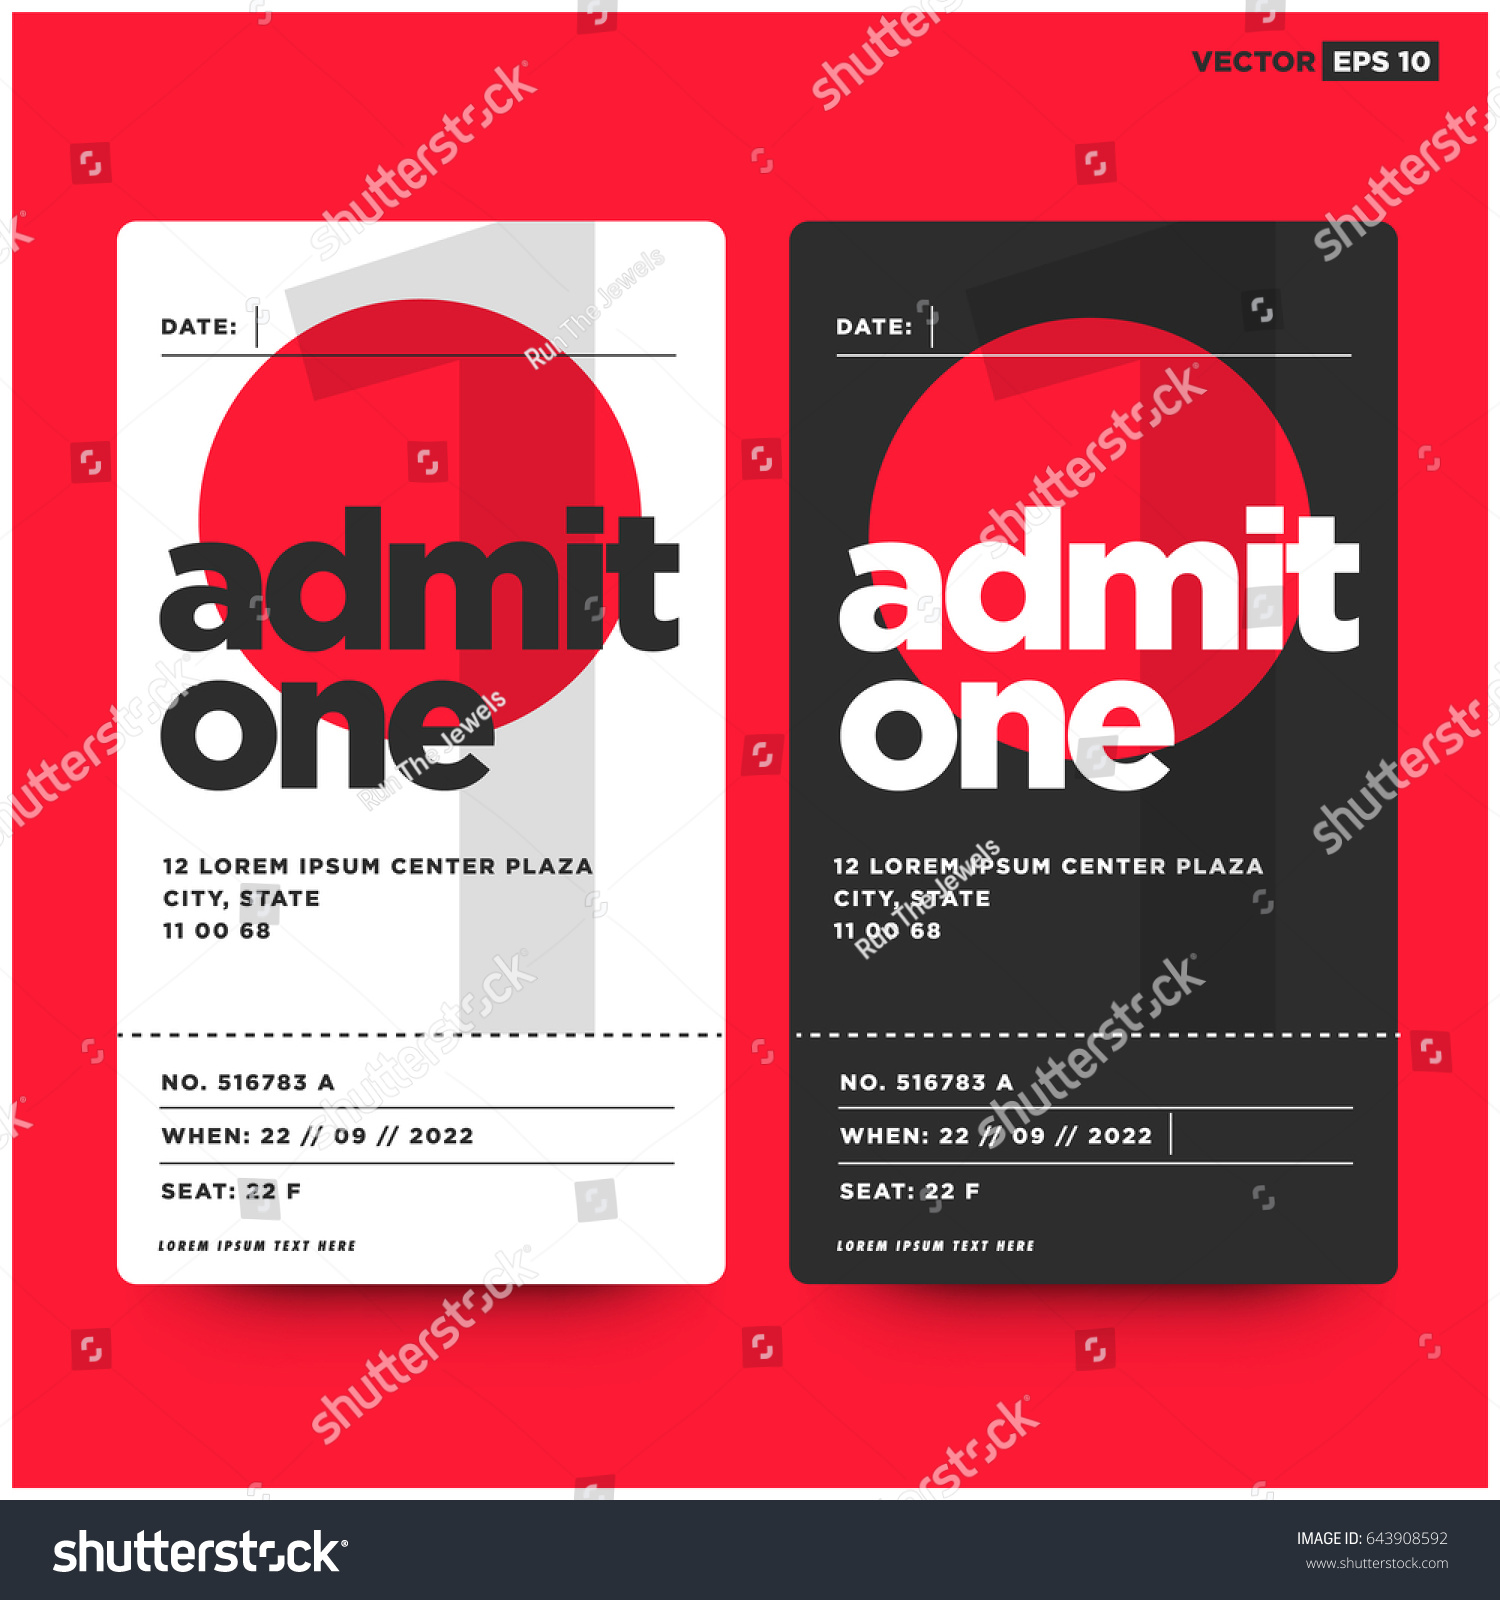 admit one ticket template with number venue and seat details